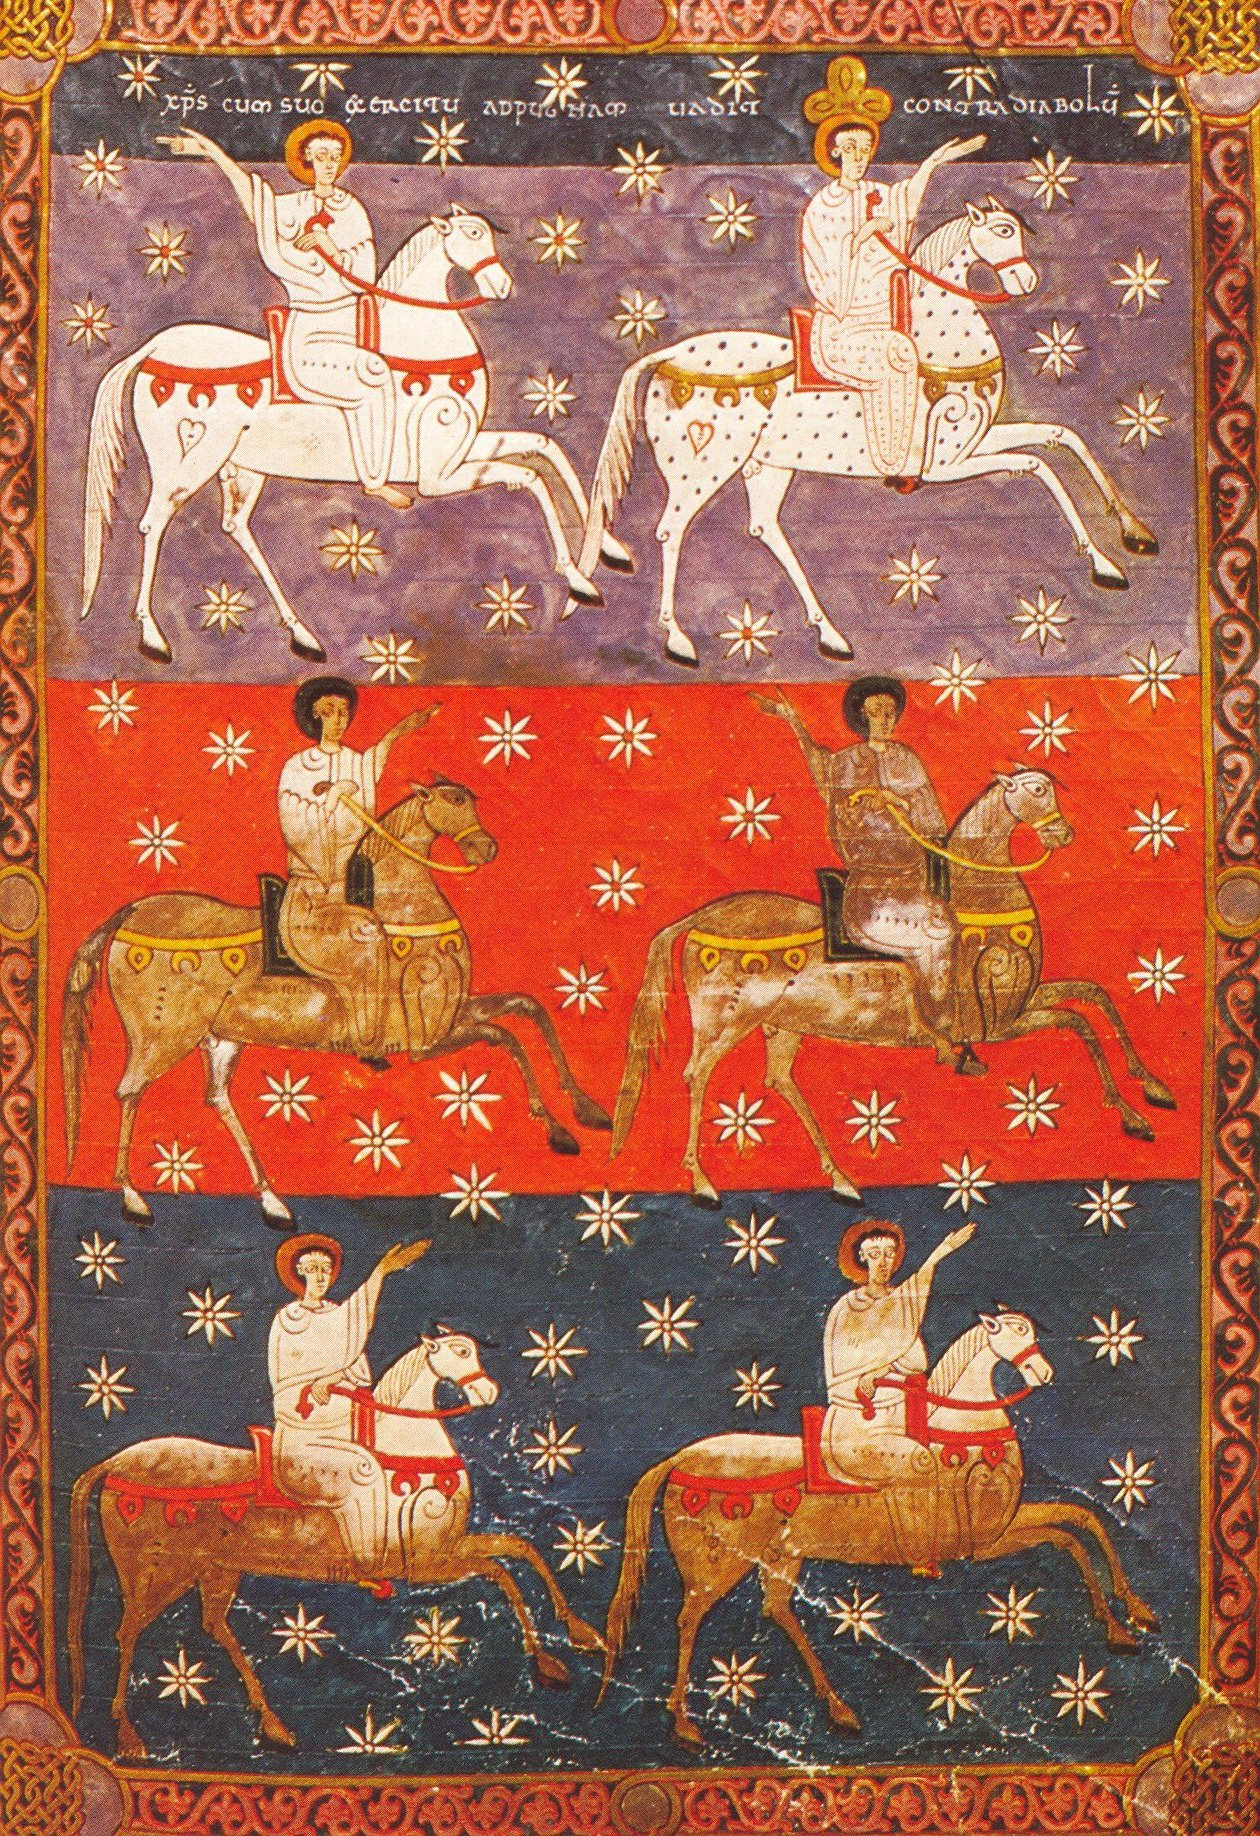 Four Horsemen Of Heaven, illustration of 'Beato of Valcavado', 1047, Beato of Facundus, León, Al-Andalus (now Spain)